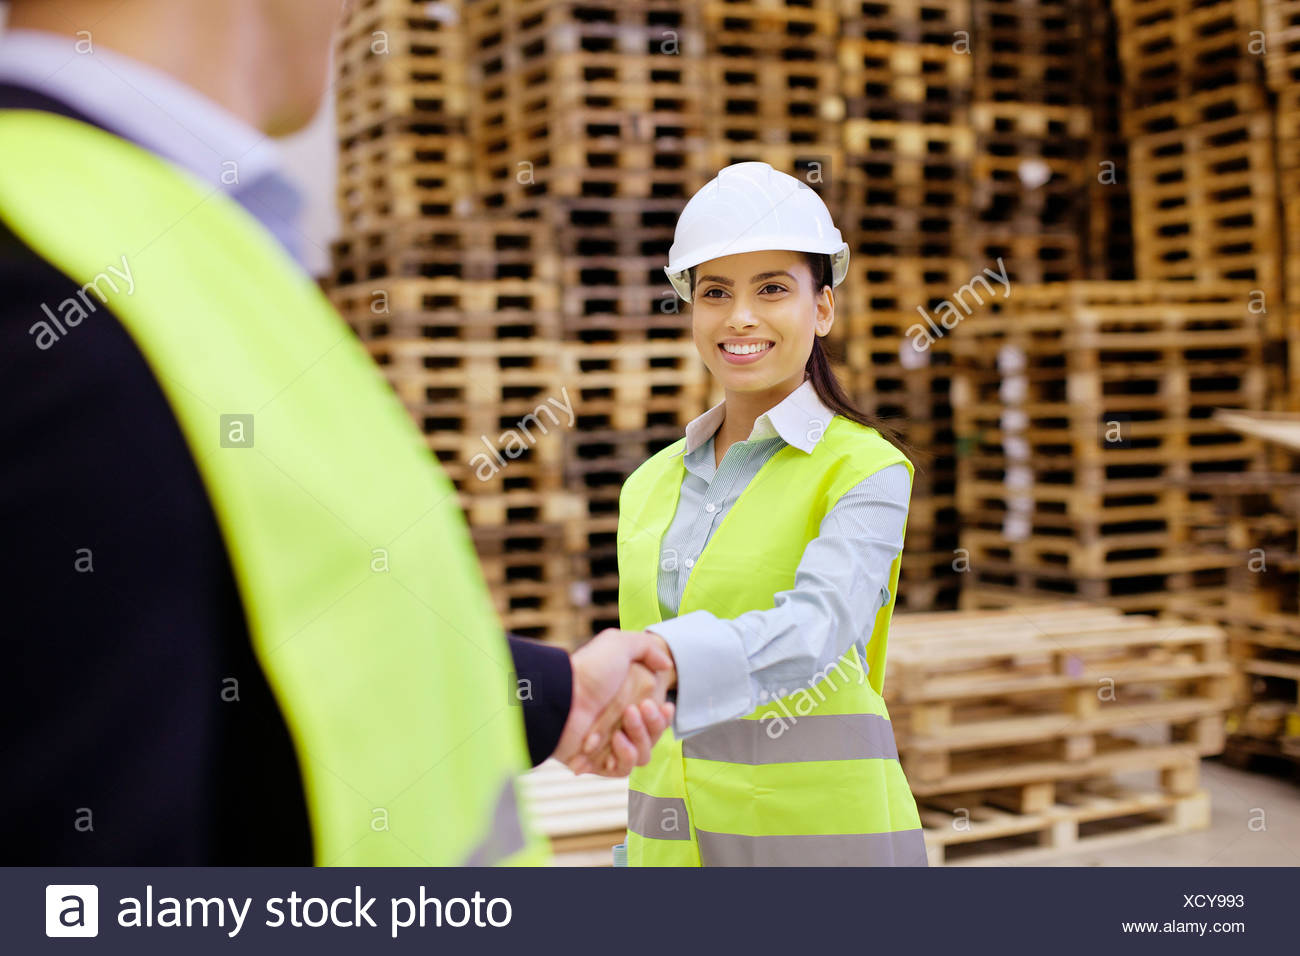 Supervisor and trainee shaking hands in distribution warehouse - Stock Image